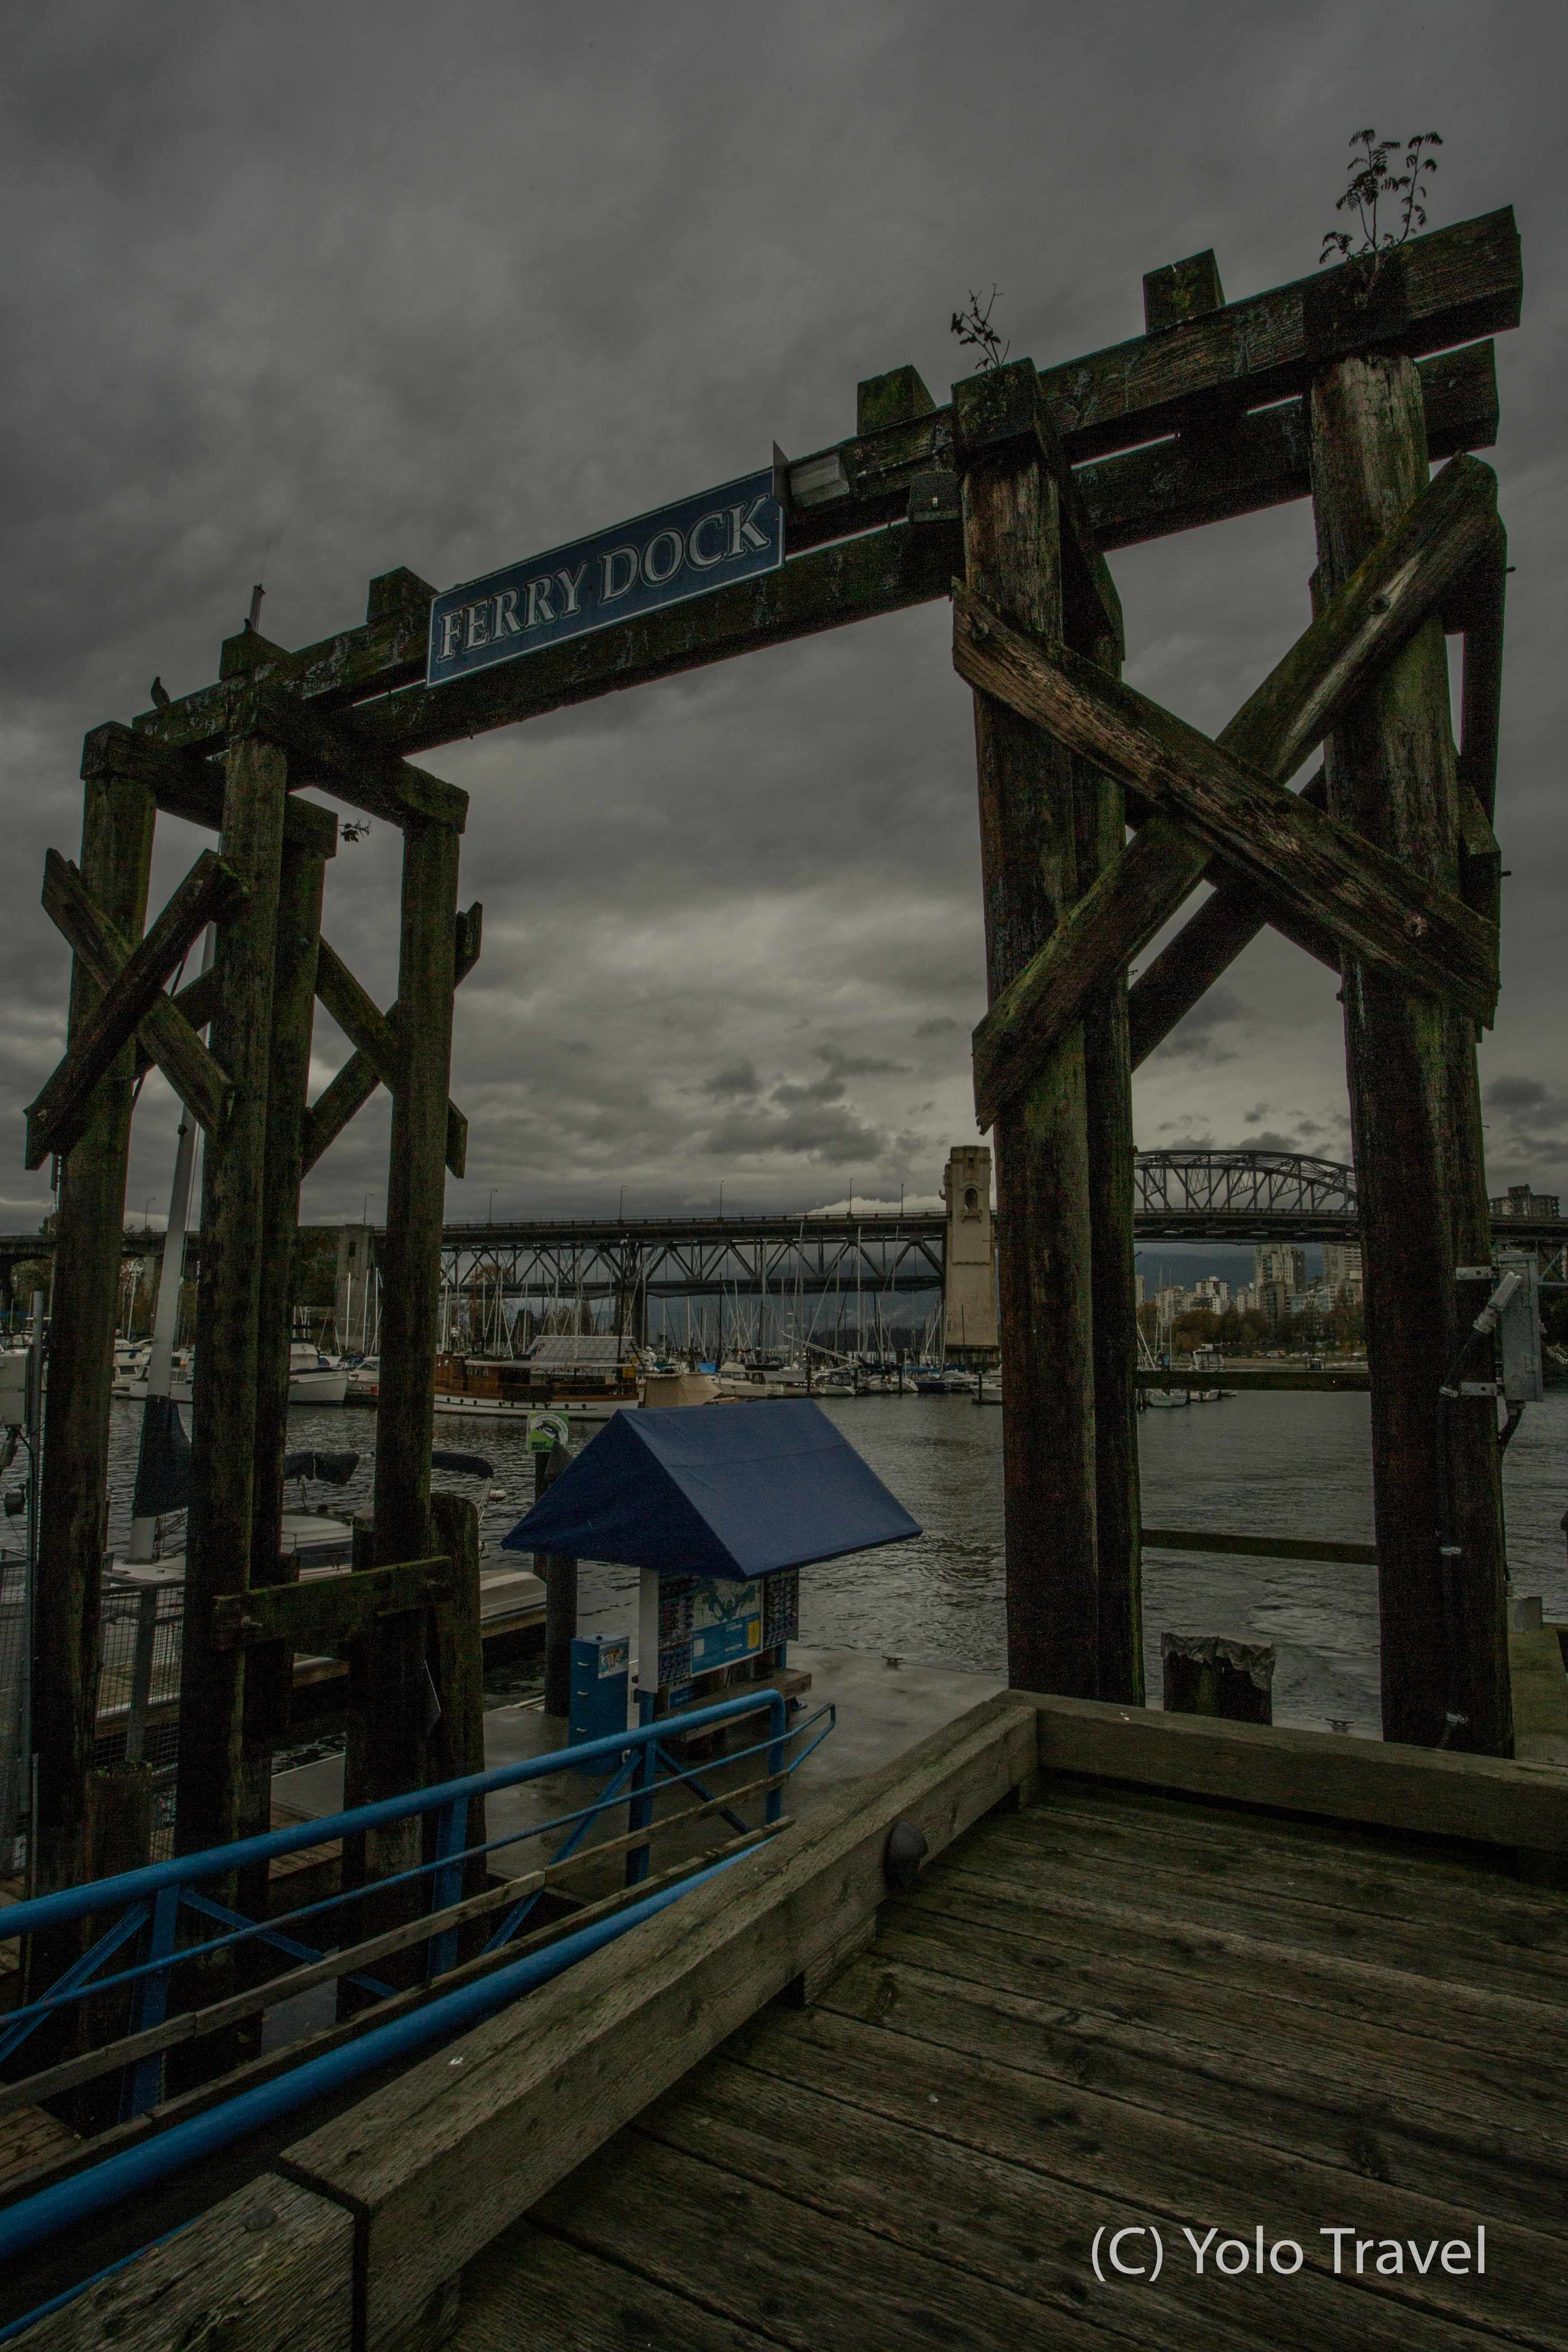 Ferry Dock at Granville Island